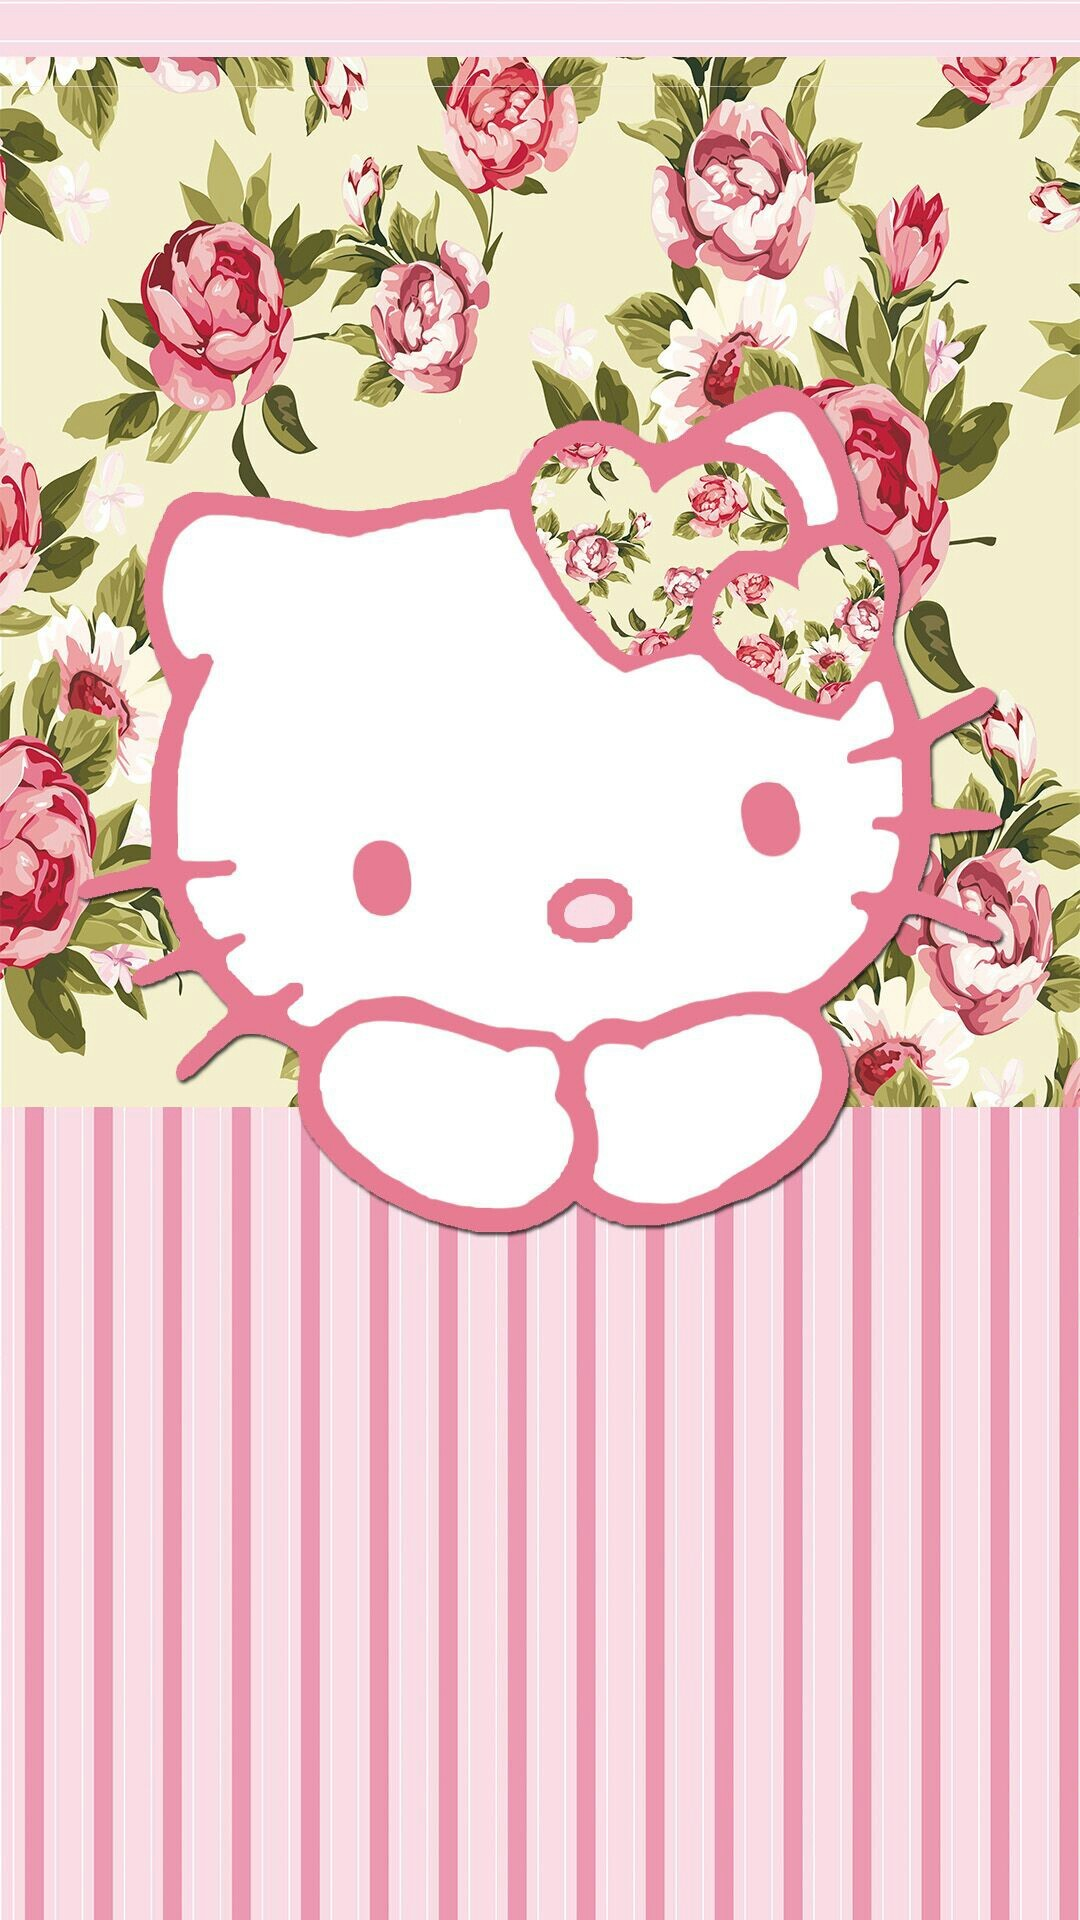 Hello Hello Kitty Hd Wallpaper For Android Phone